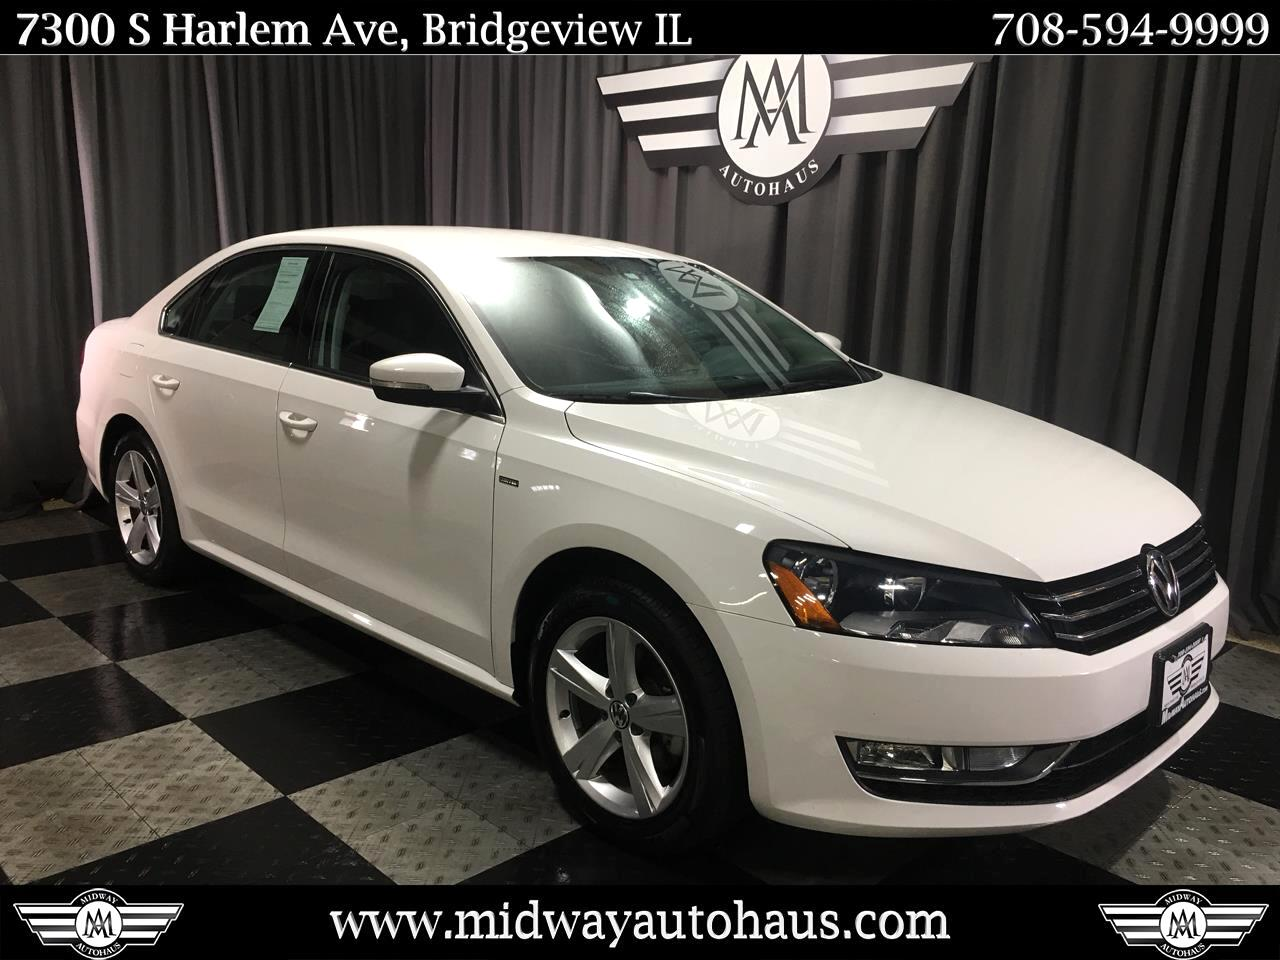 Pre-Owned 2015 Volkswagen Passat 4dr Sdn 1.8T Auto Limited Edition PZEV